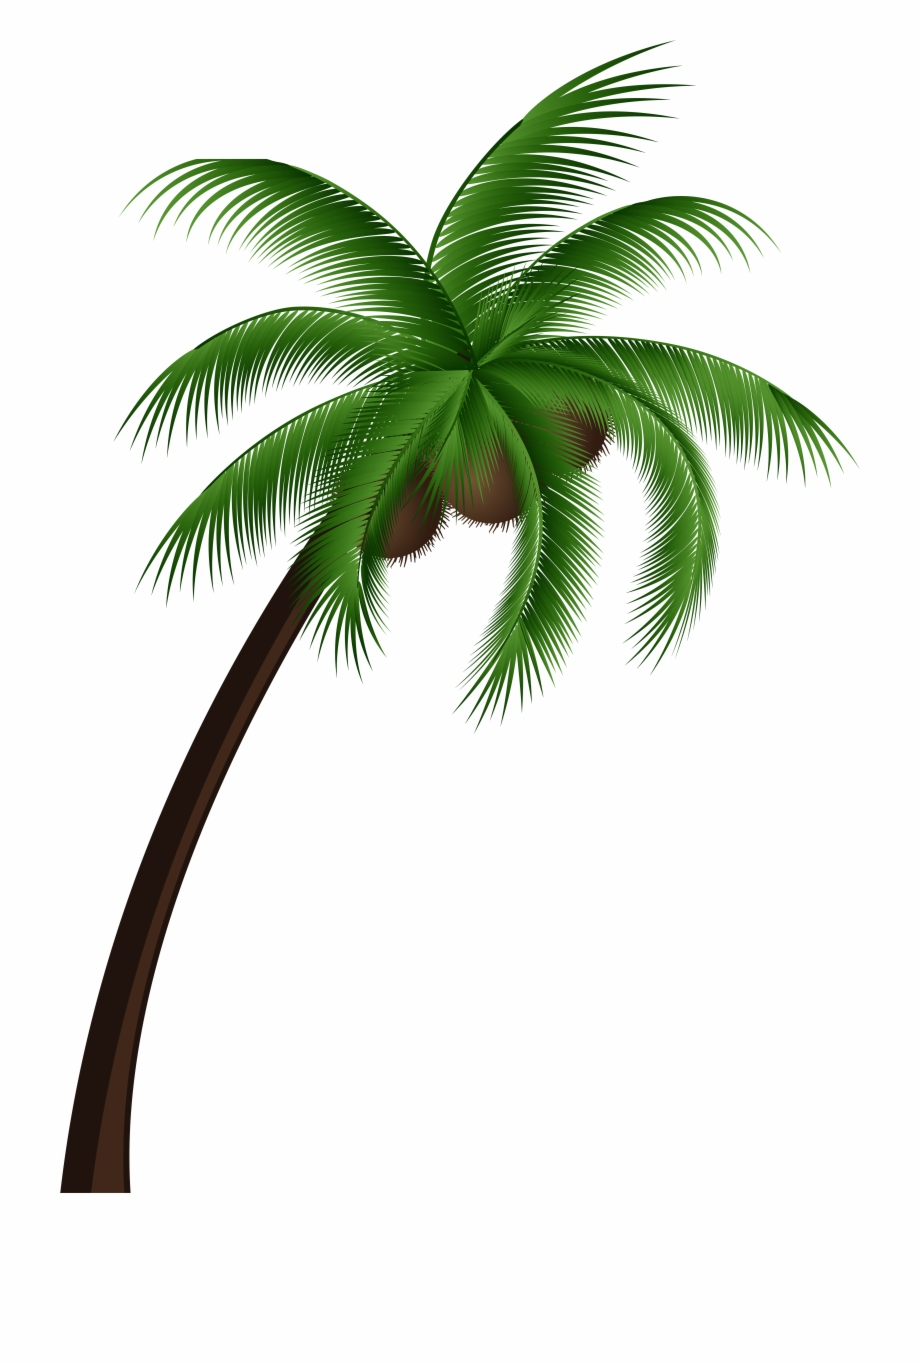 Coconut tree clipart plan clip black and white stock Coconut Palm Tree Png Clip Art - Coconut Tree Vector Png ... clip black and white stock